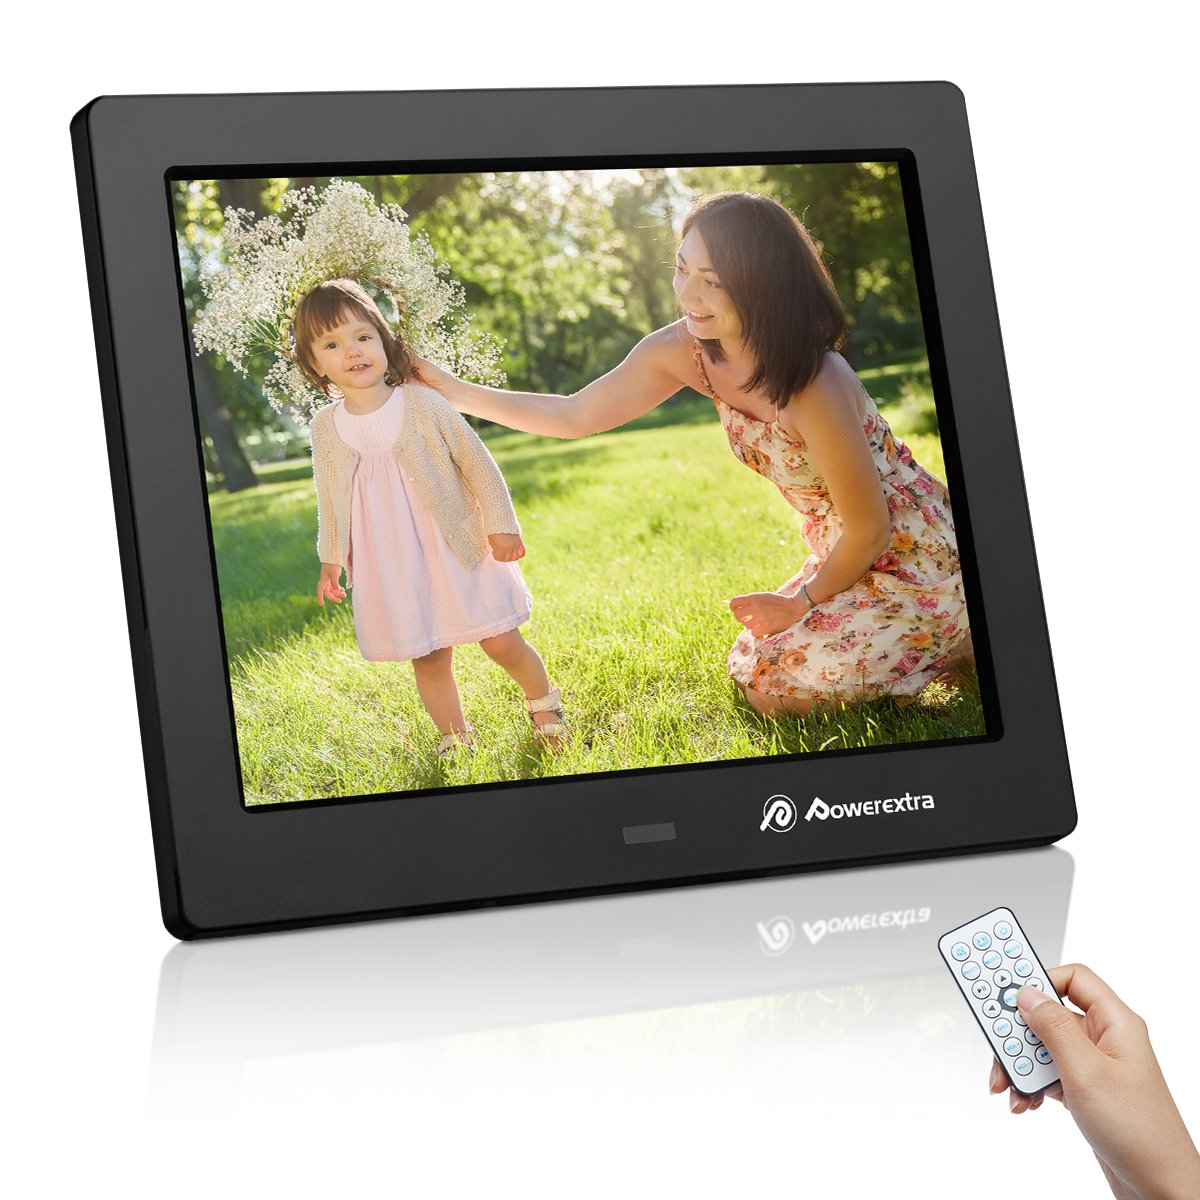 Powerextra 8 inch HD Digital Photo Frame with Motion Sensor, Calendar/Clock Function, MP3/Photo/Video Player with Remote Control